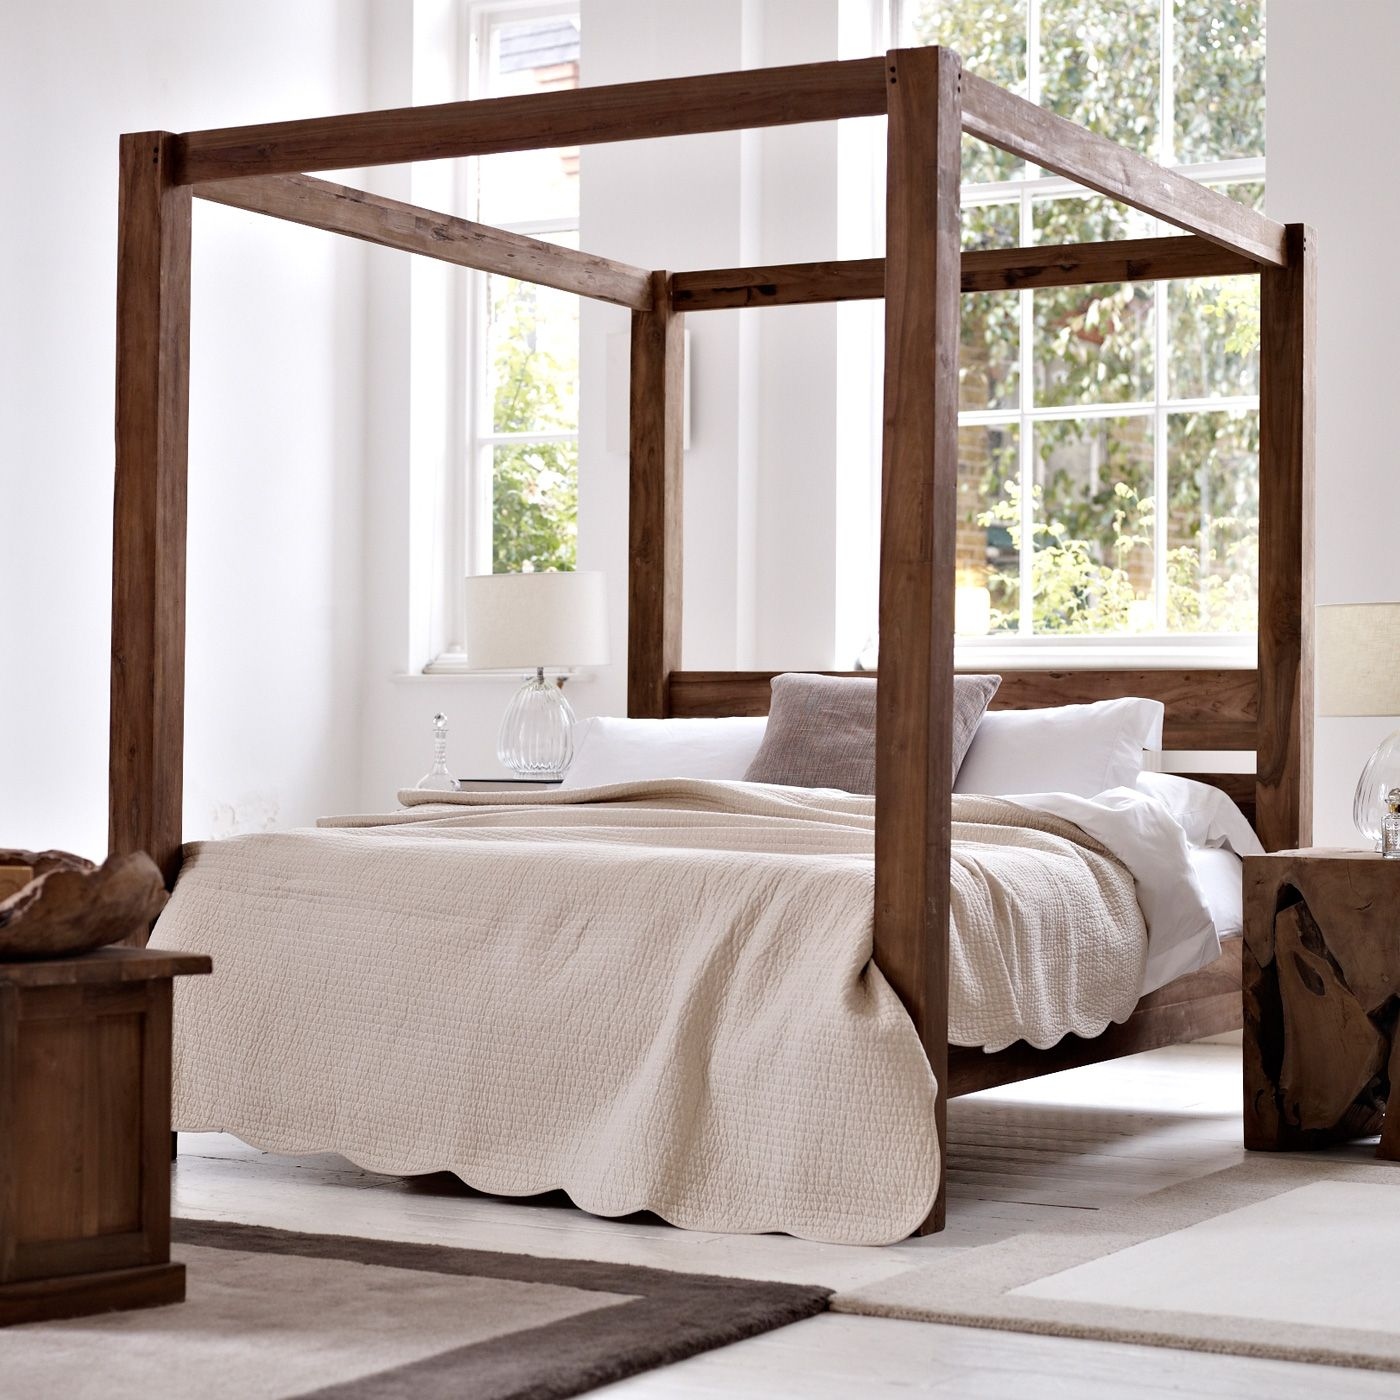 crown solid sheesham wood canopy bed online furniture store in sardarshahar